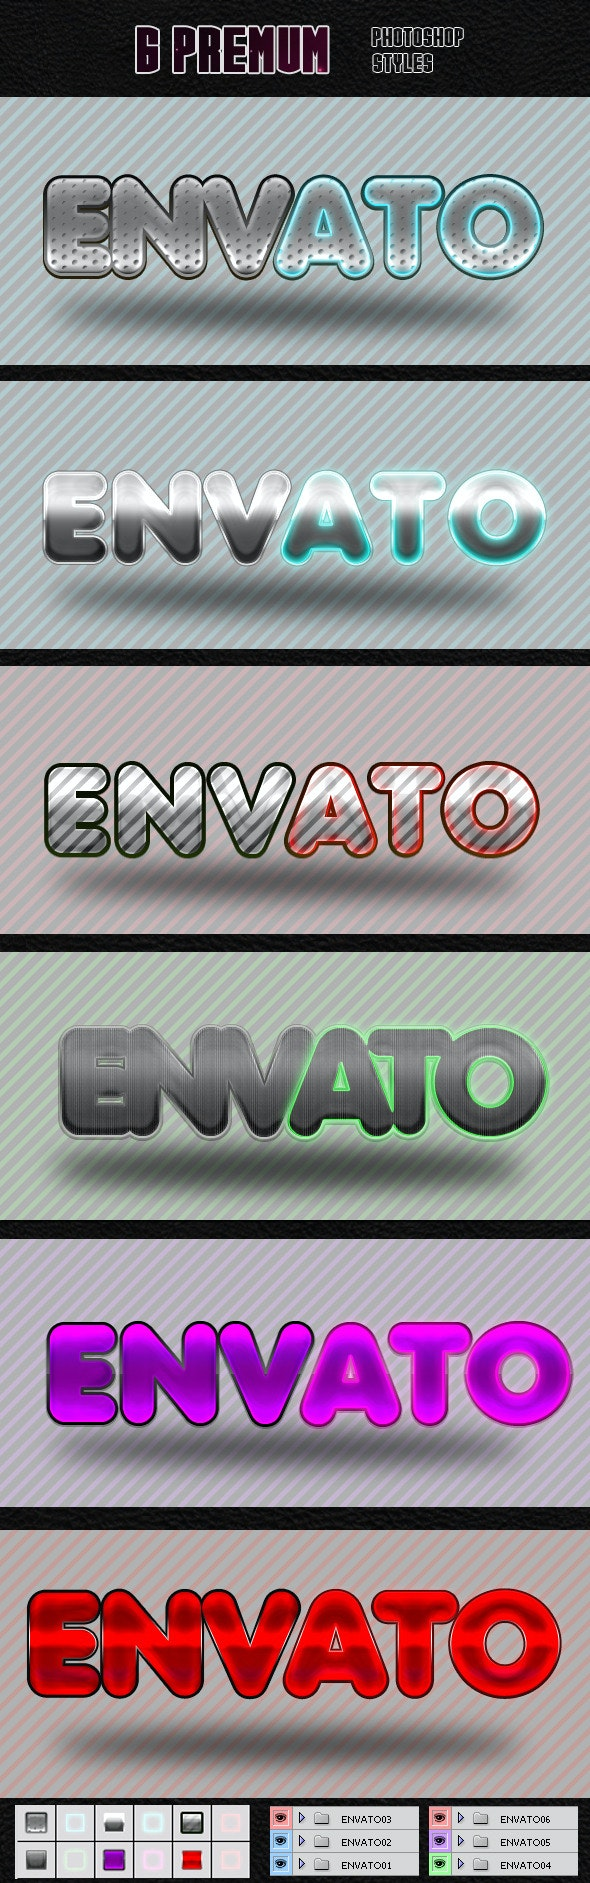 Styles Photoshop - Text Effects Styles